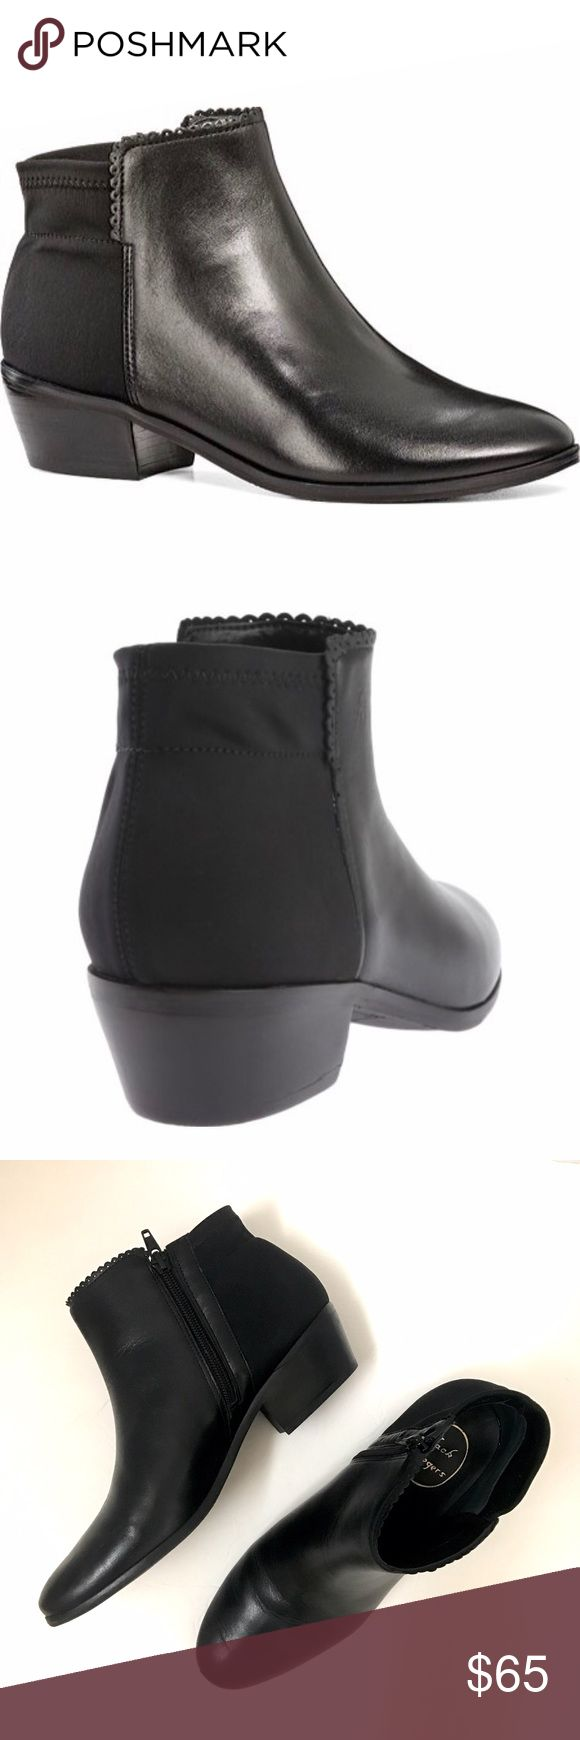 Jack Rodgers Bailee ankle boots Black leather Jack Rogers ankle boots with subtle scalloped edge. Stretchy back panel and zip sides for the perfect fit. Heel height: 1 1/2 inch. Only worn once and in great condition. One small scuff on the front of the left boot. Jack Rogers Shoes Ankle Boots & Booties